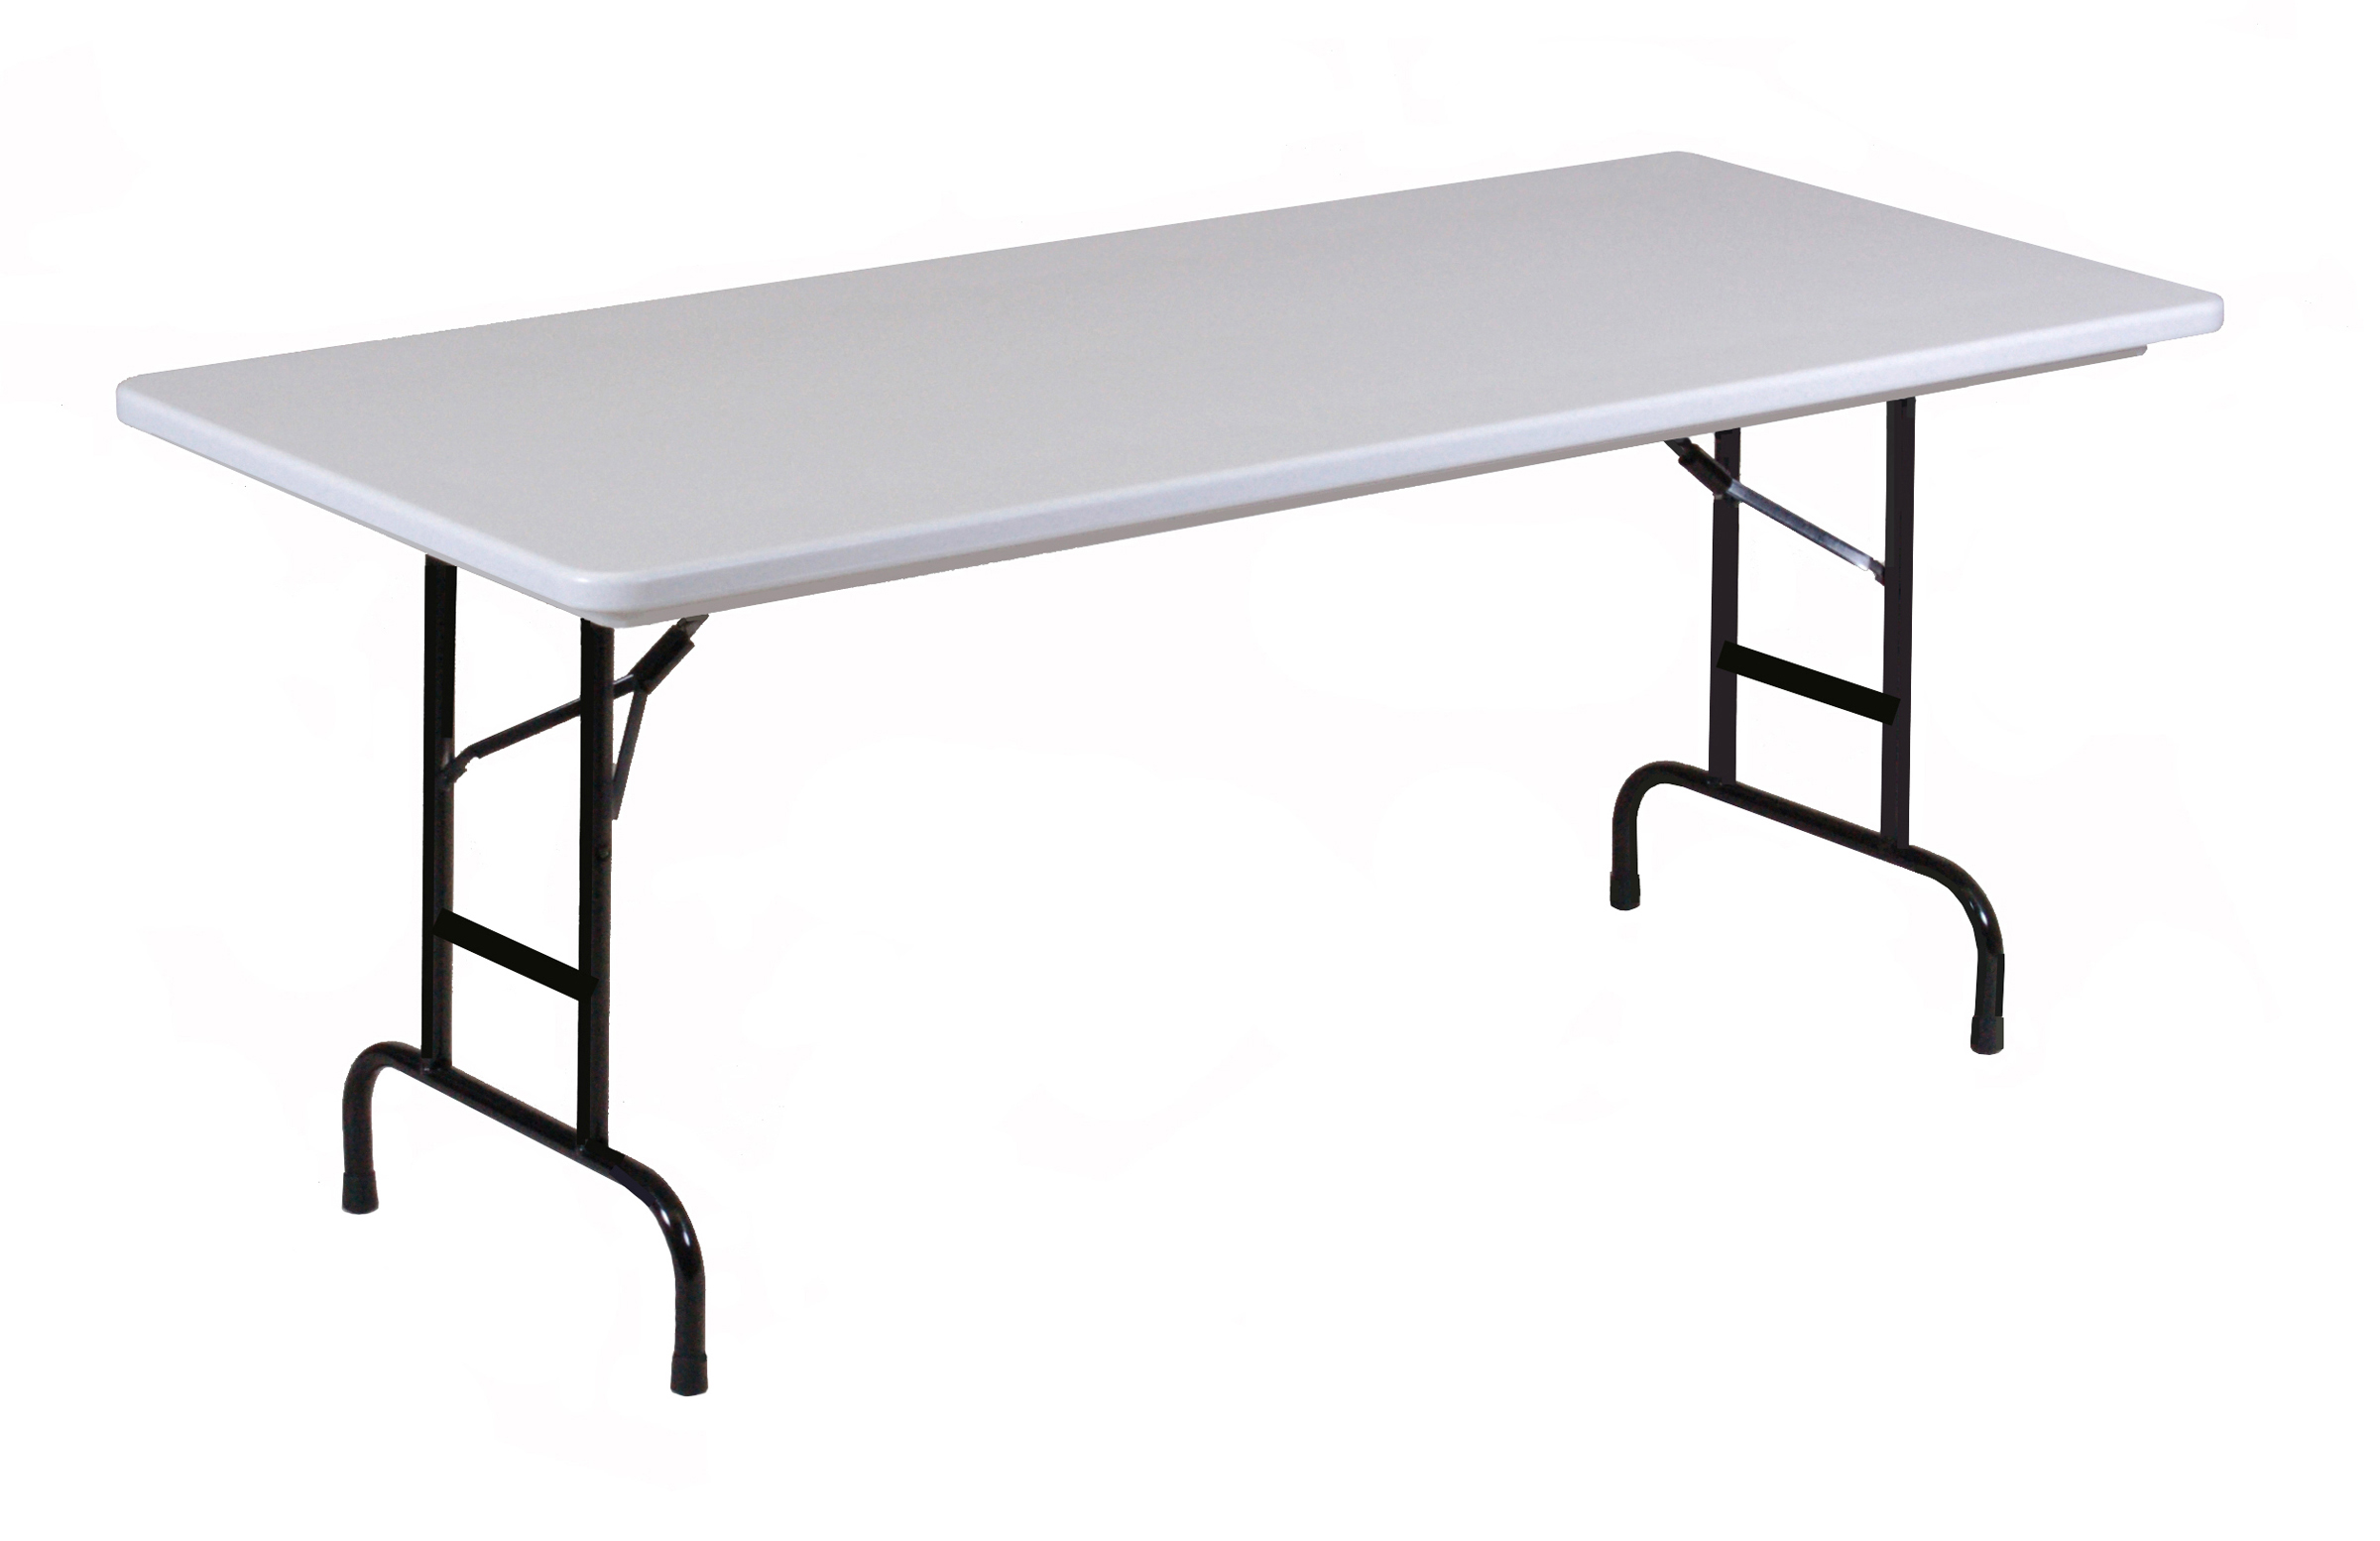 Correll Gray Granite Commercial Duty, Adjustable Height Plastic Top Folding  Table. Height Adjusts From